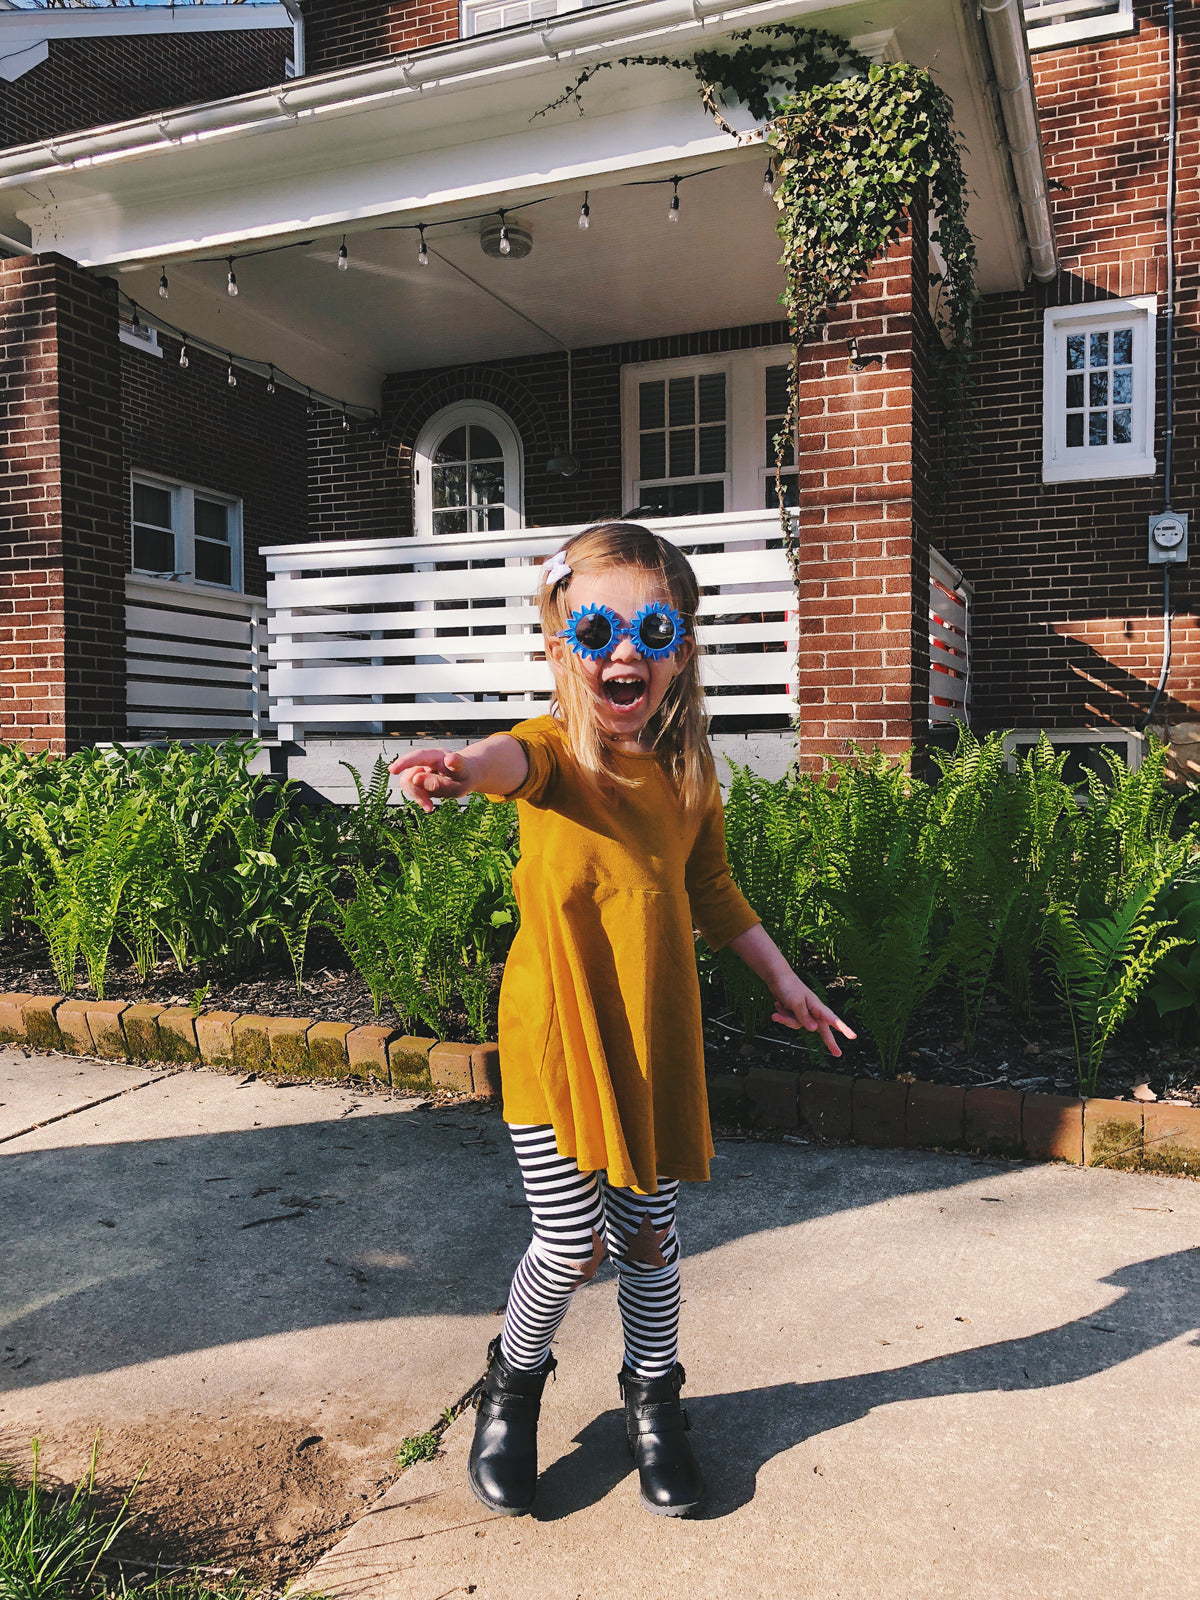 6 Tips To Take Better Photos of Your Kids